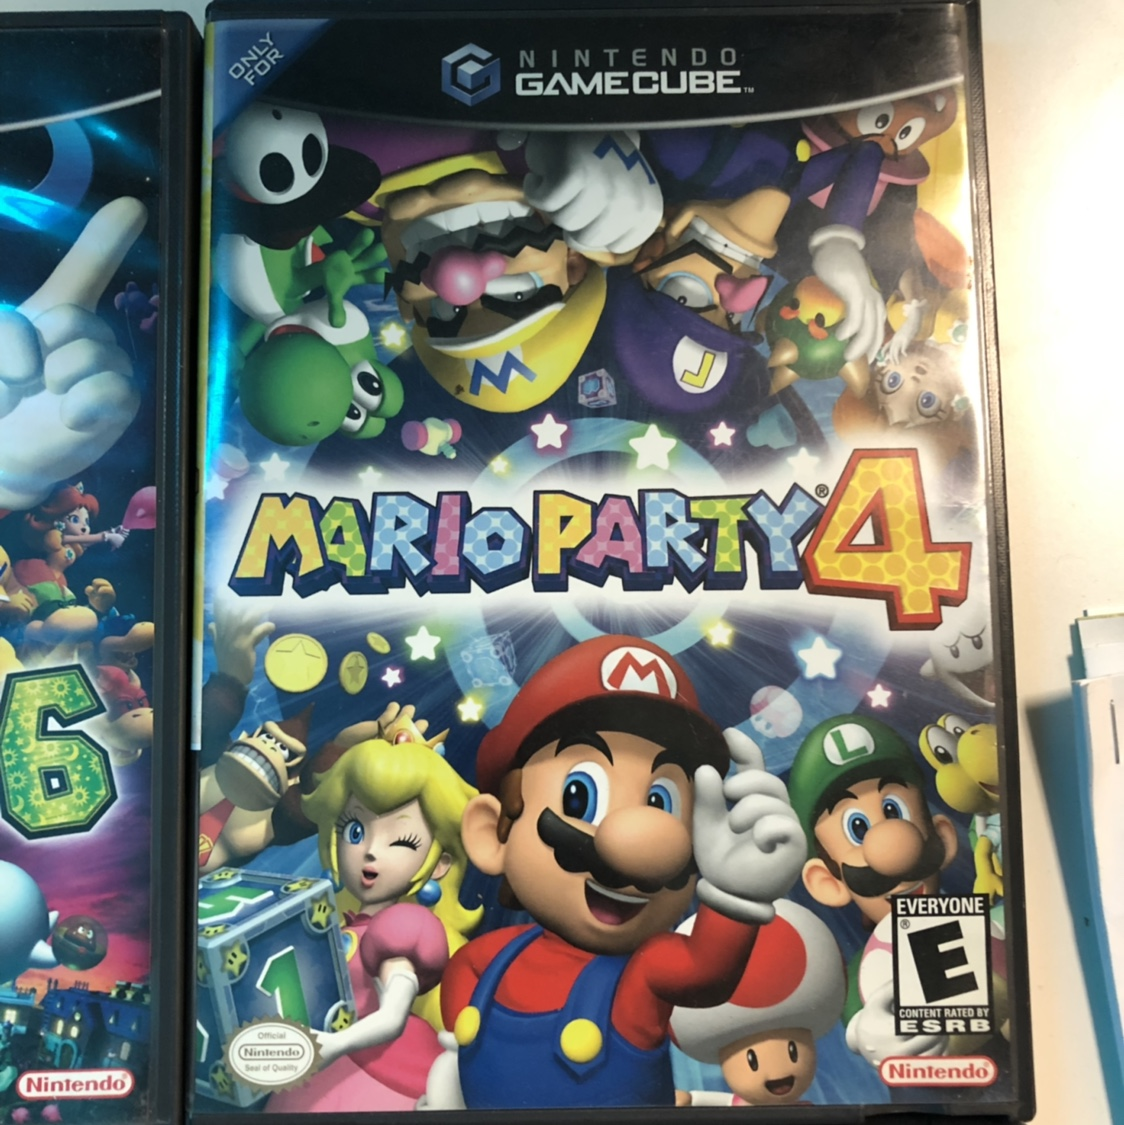 Nintendo GameCube: Mario Party 4! Here's a classic    - Depop